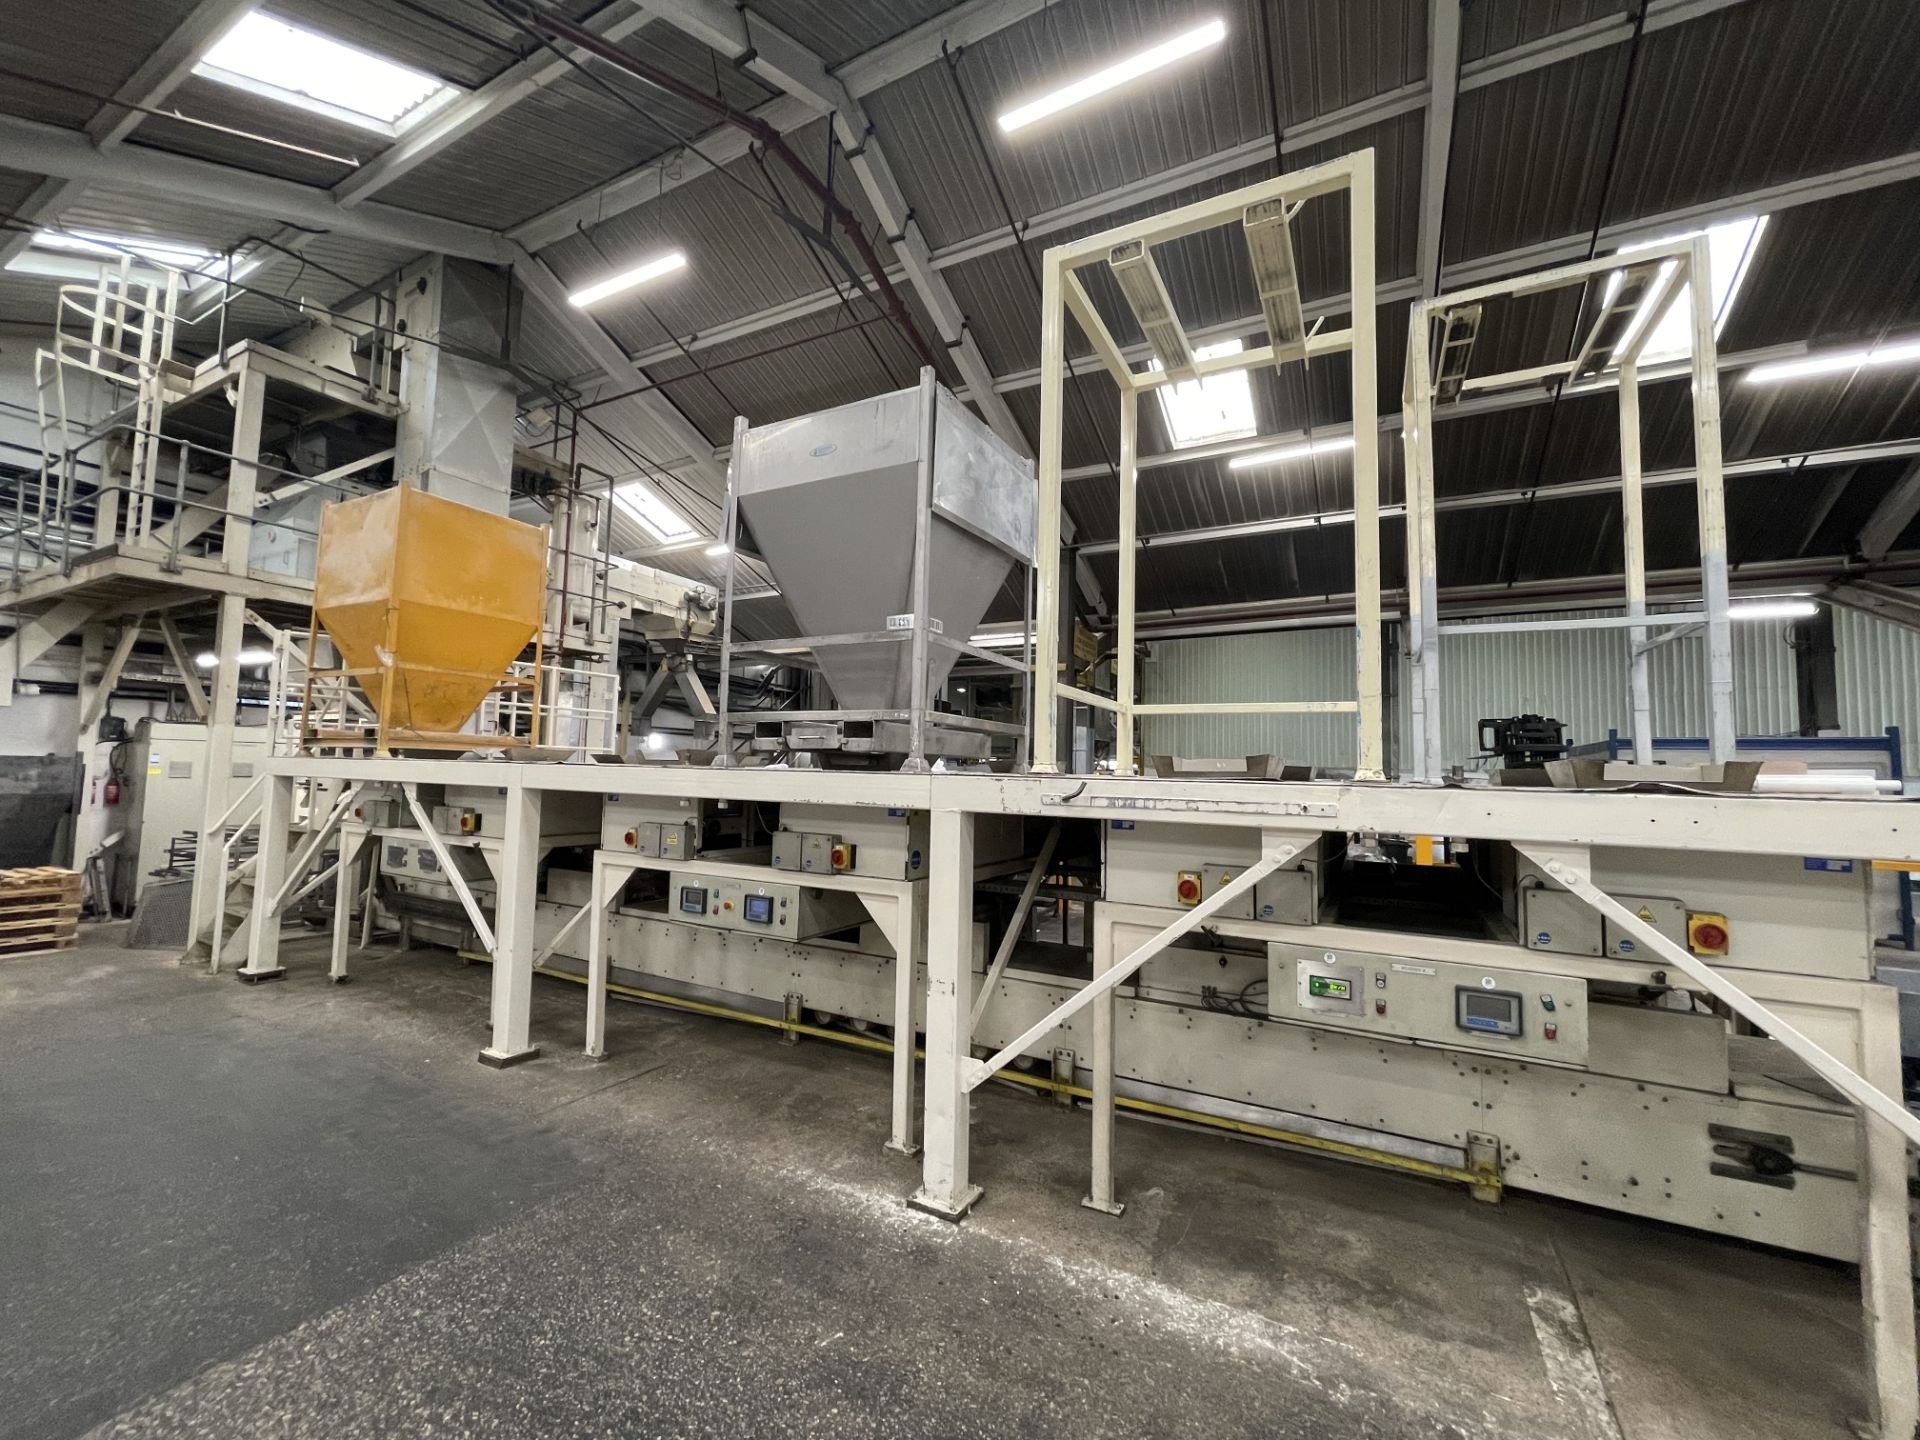 Pet Food Blending Line c/w Wynveen PM 750LH Stainless Steel Double Shaft Paddle Mixer - Image 27 of 63